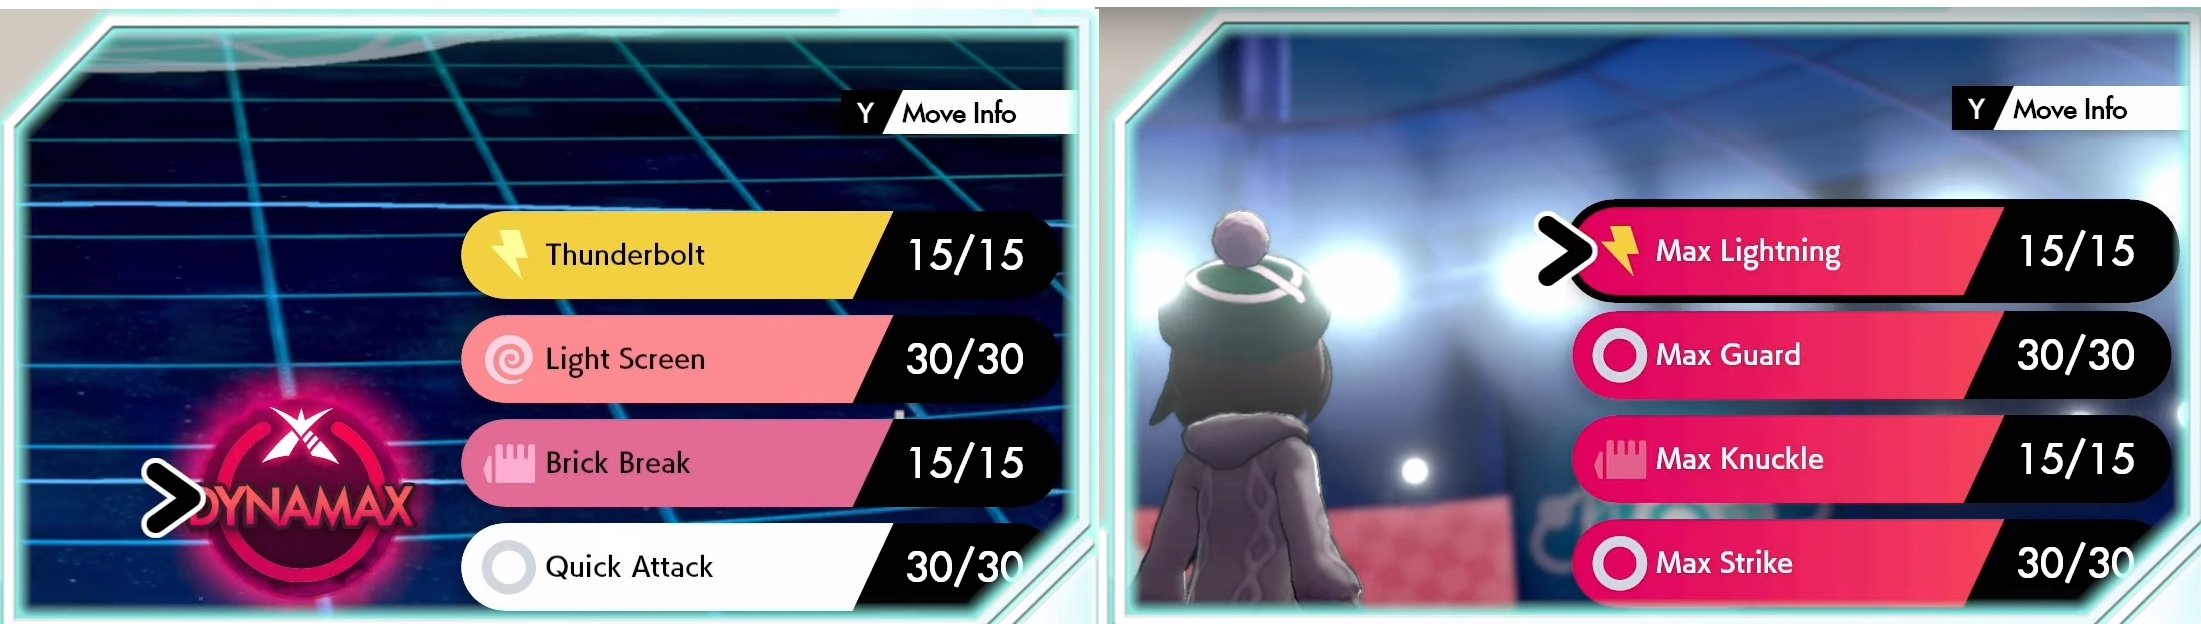 Pokemon Sword and Shield Dynamax moves